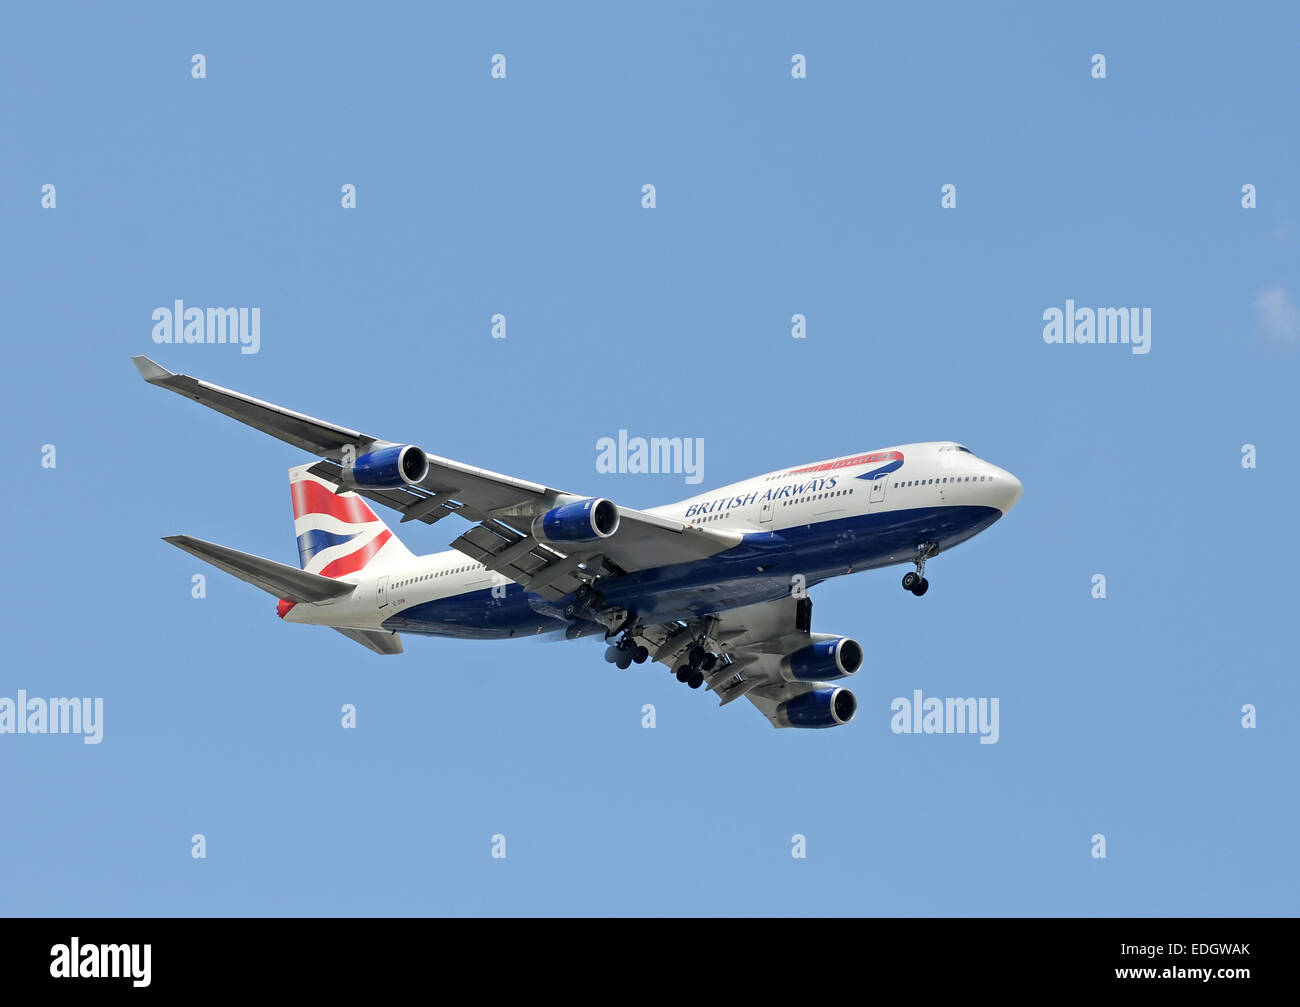 Miami, USA - September 6, 2008: British Airways Boeing 747 jumbo jet arrives in Miami after a flight from London. Stock Photo